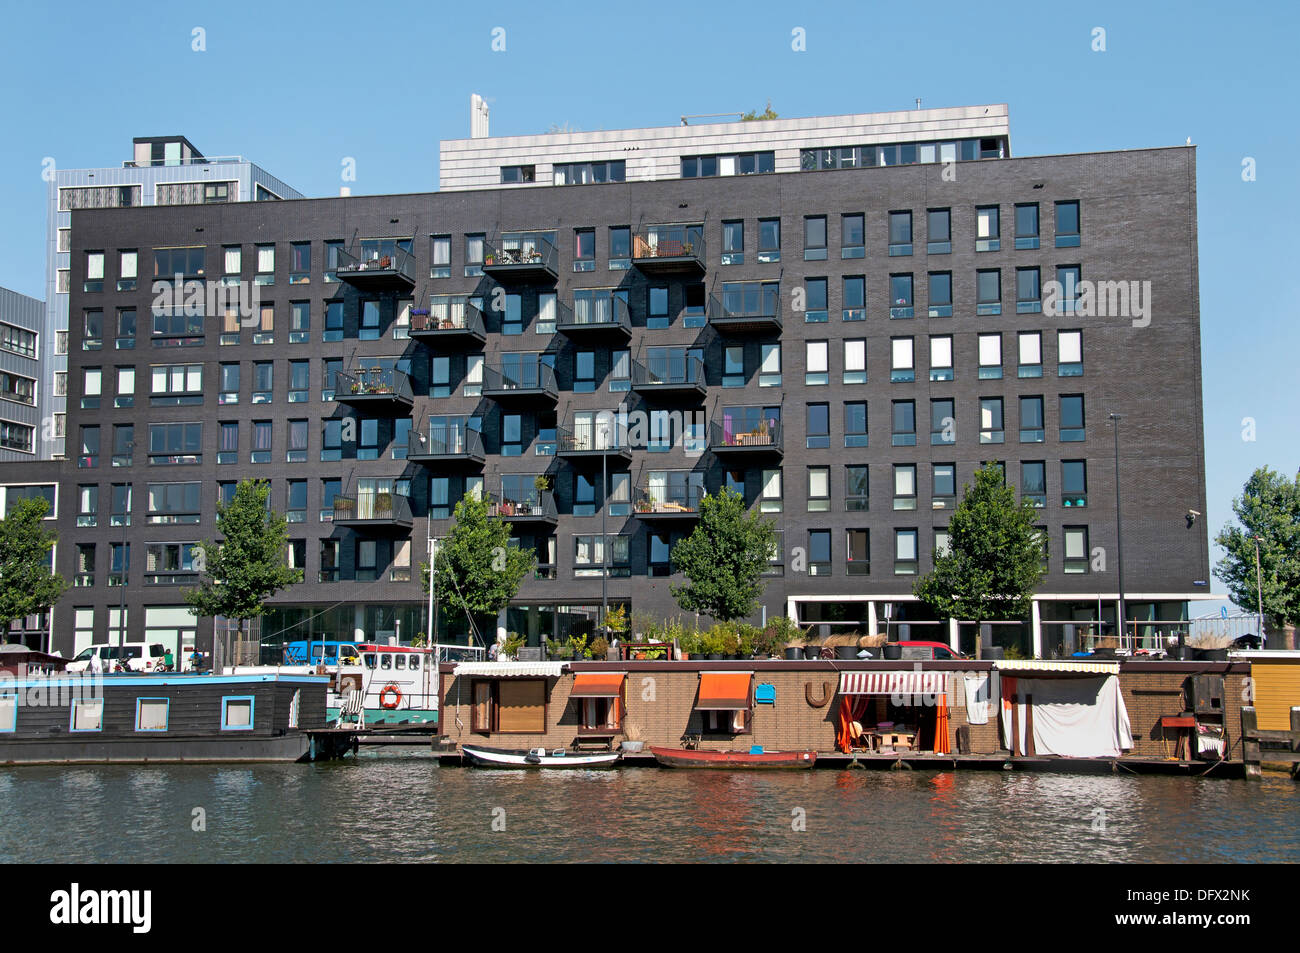 Westerdok Amsterdam Netherlands Dutch modern city town  house boat houseboat - Stock Image